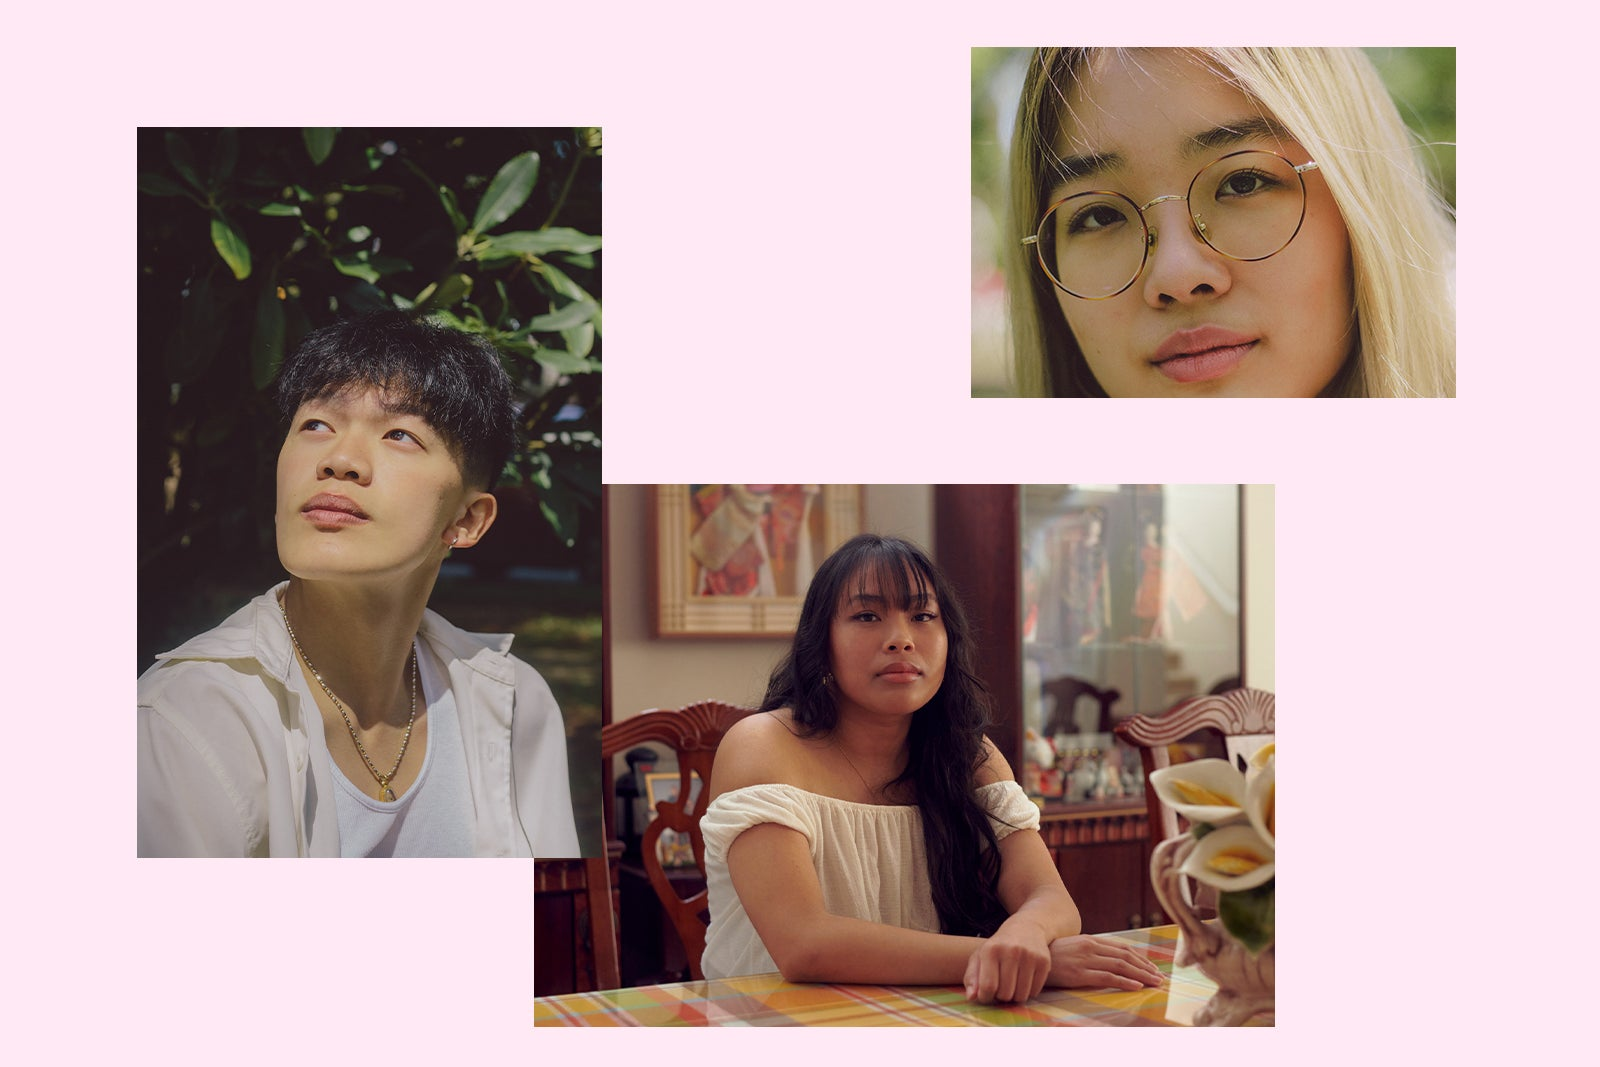 These Young Asian Americans Are Entering Adulthood Ready To Confront The Racism They Grew Up Ignoring